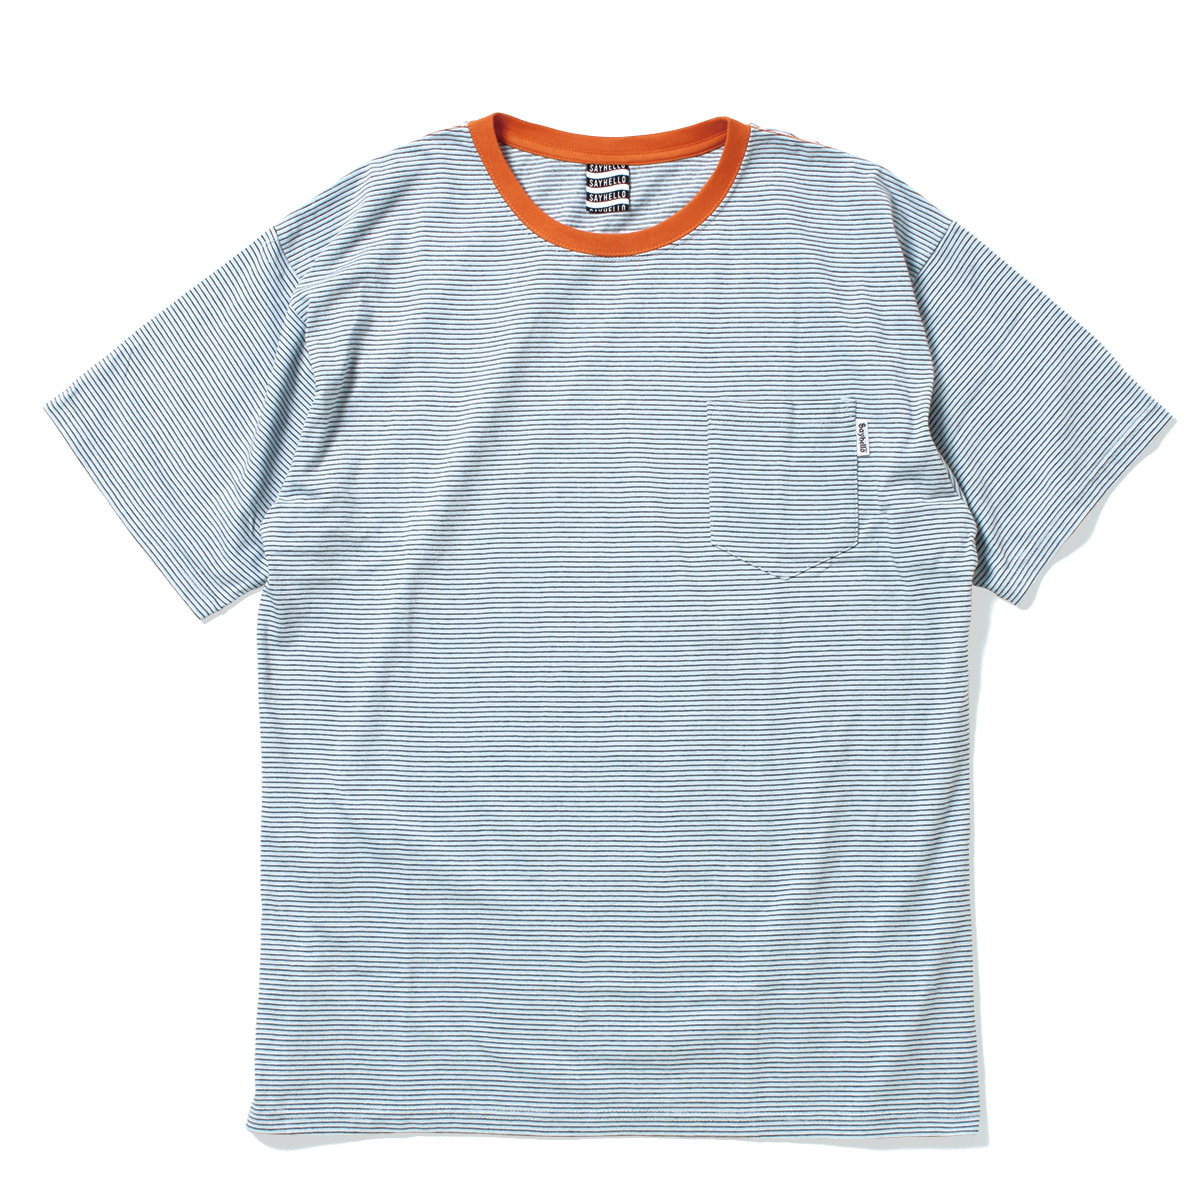 SAYHELLO/Trim Border S/S Tee